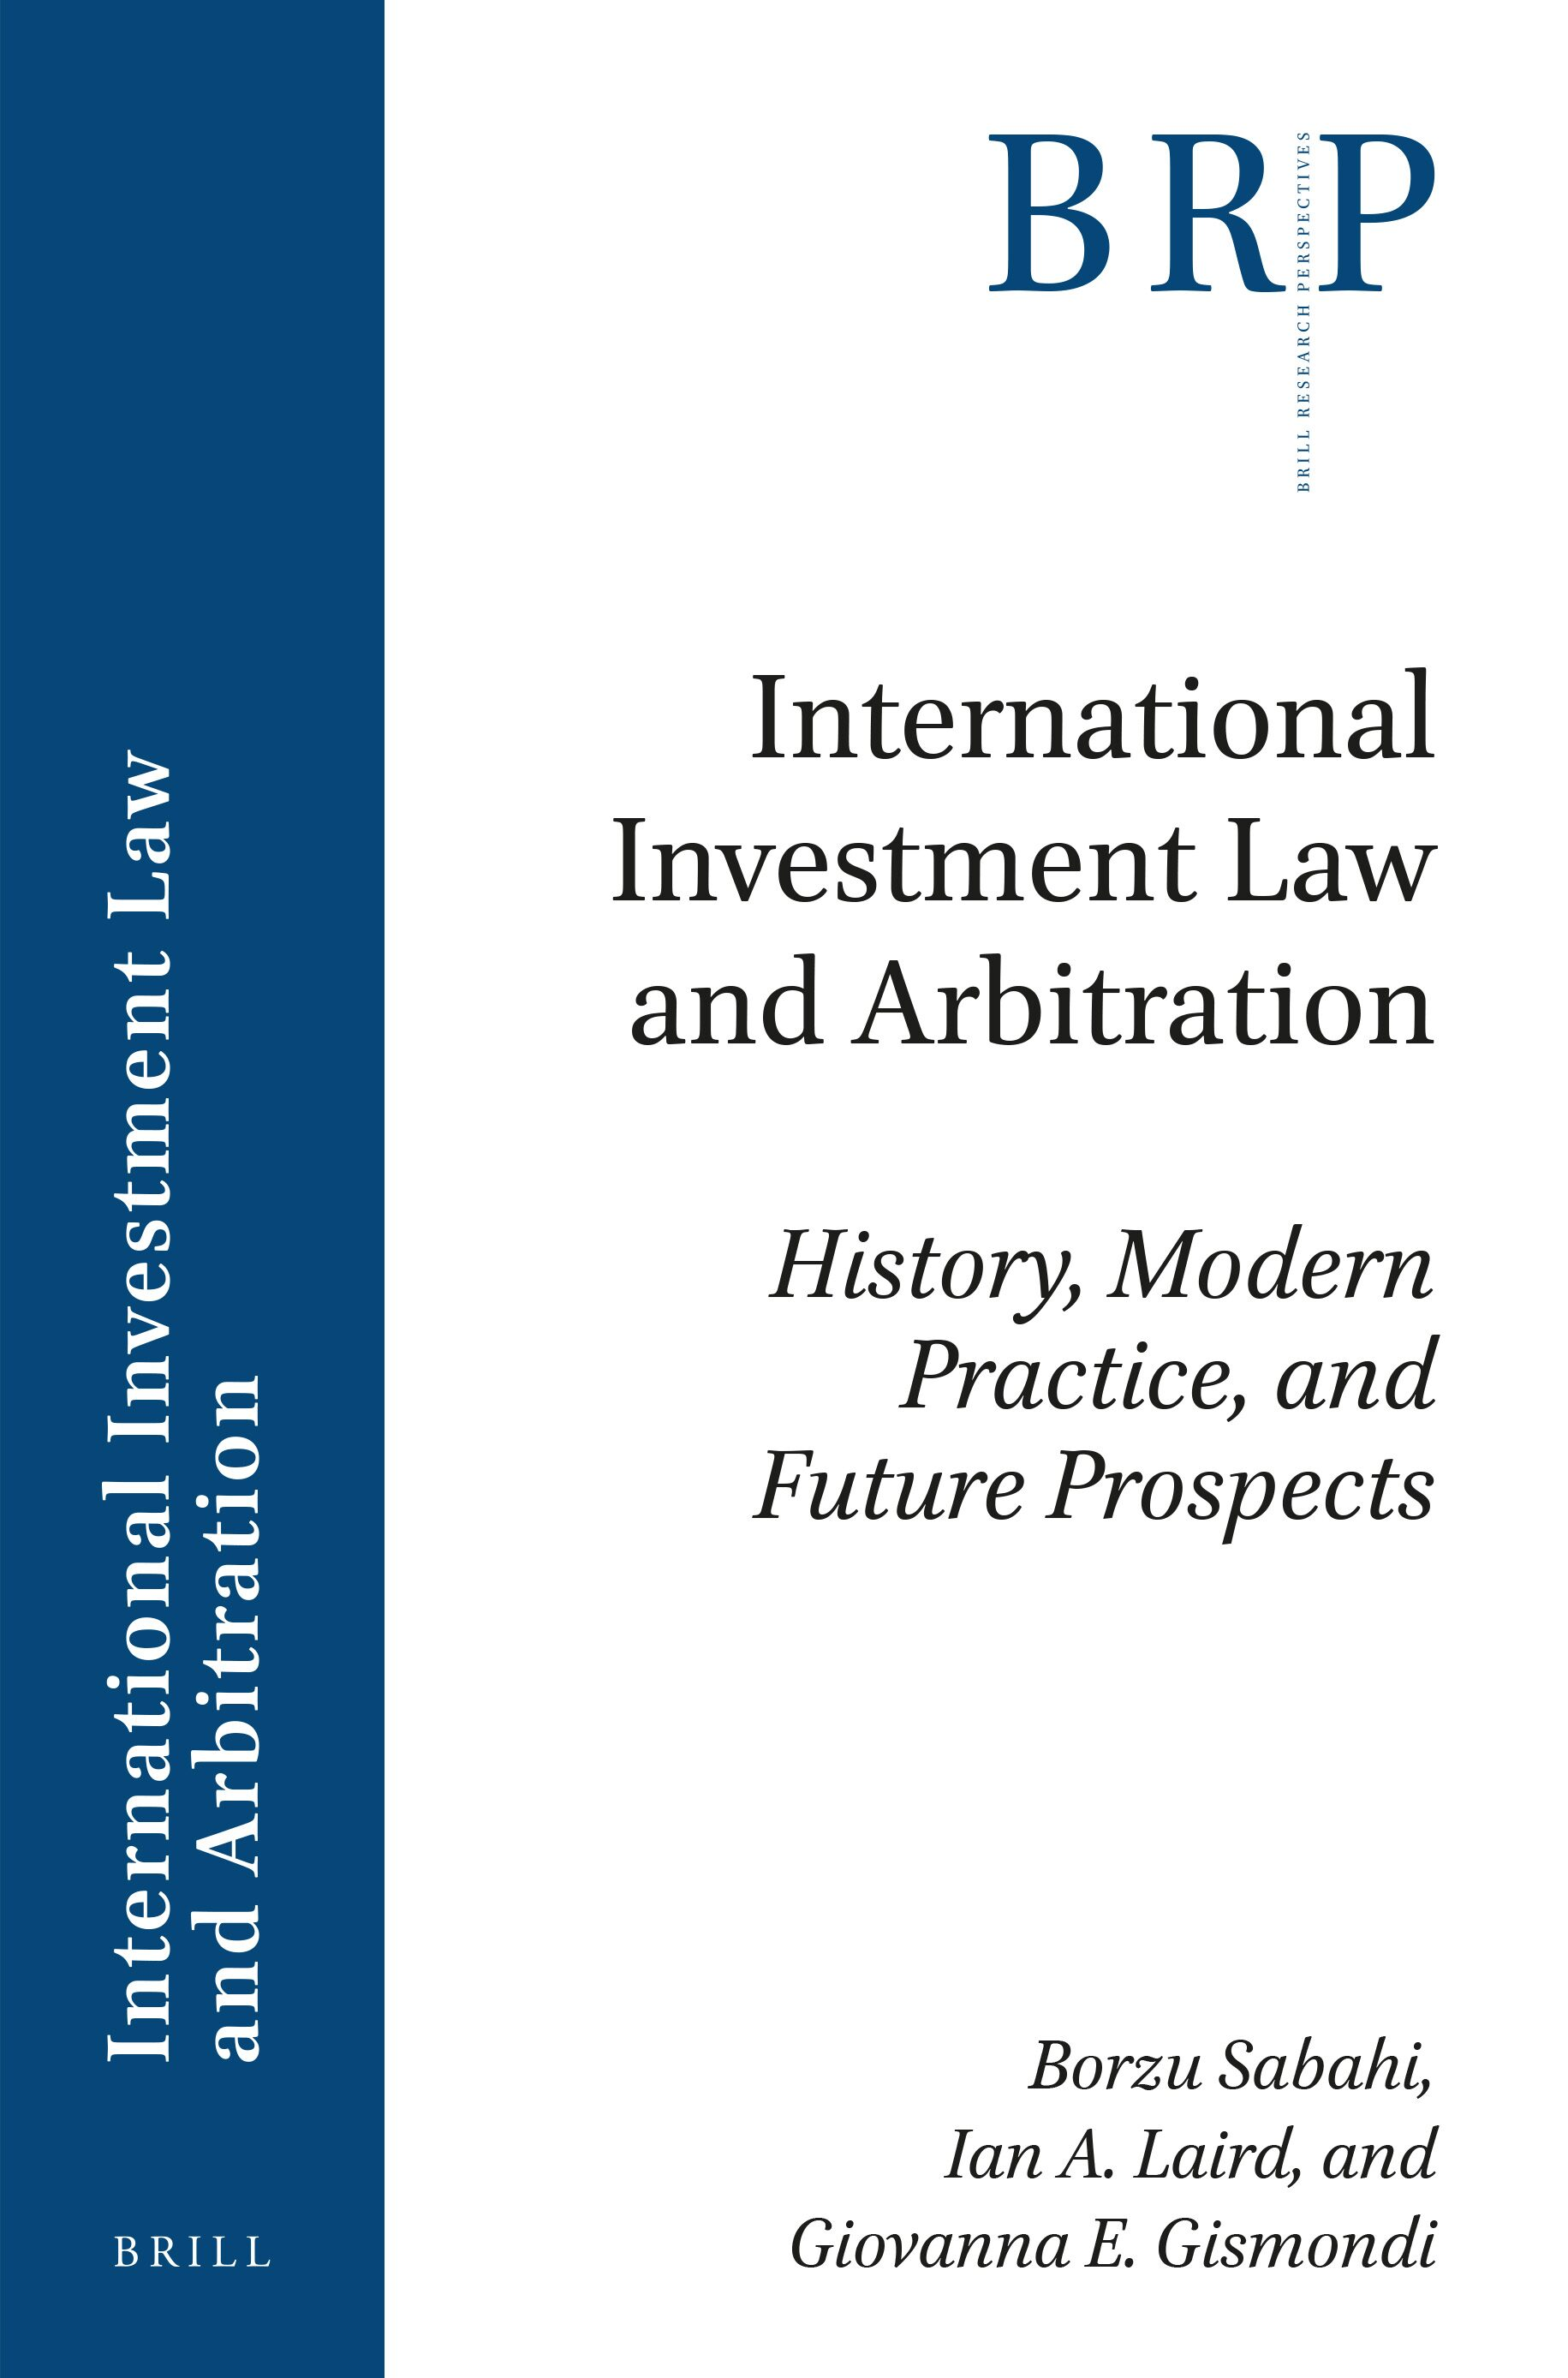 International Investment Law and Arbitration: History